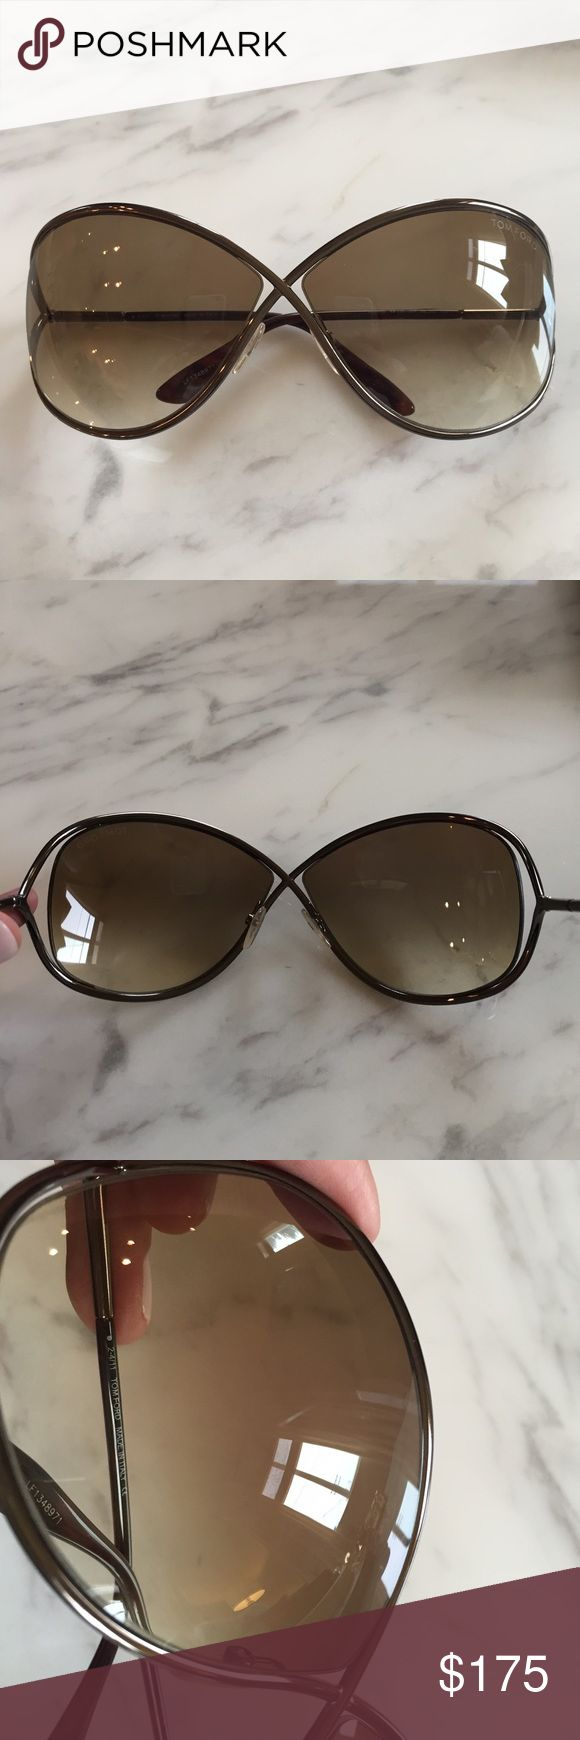 Tom Ford Miranda Sunglasses Like new condition! These are the bronzer shades. There is one teeny scratch on the right lens but it's micro fine and it was hard for me to even capture in the pic. The rest of the lens are perfect! Couldn't find the case so I'm going to send the one pictured. It's not perfect from being in handbags so FYI. No trades or returns. Tom Ford Accessories Sunglasses